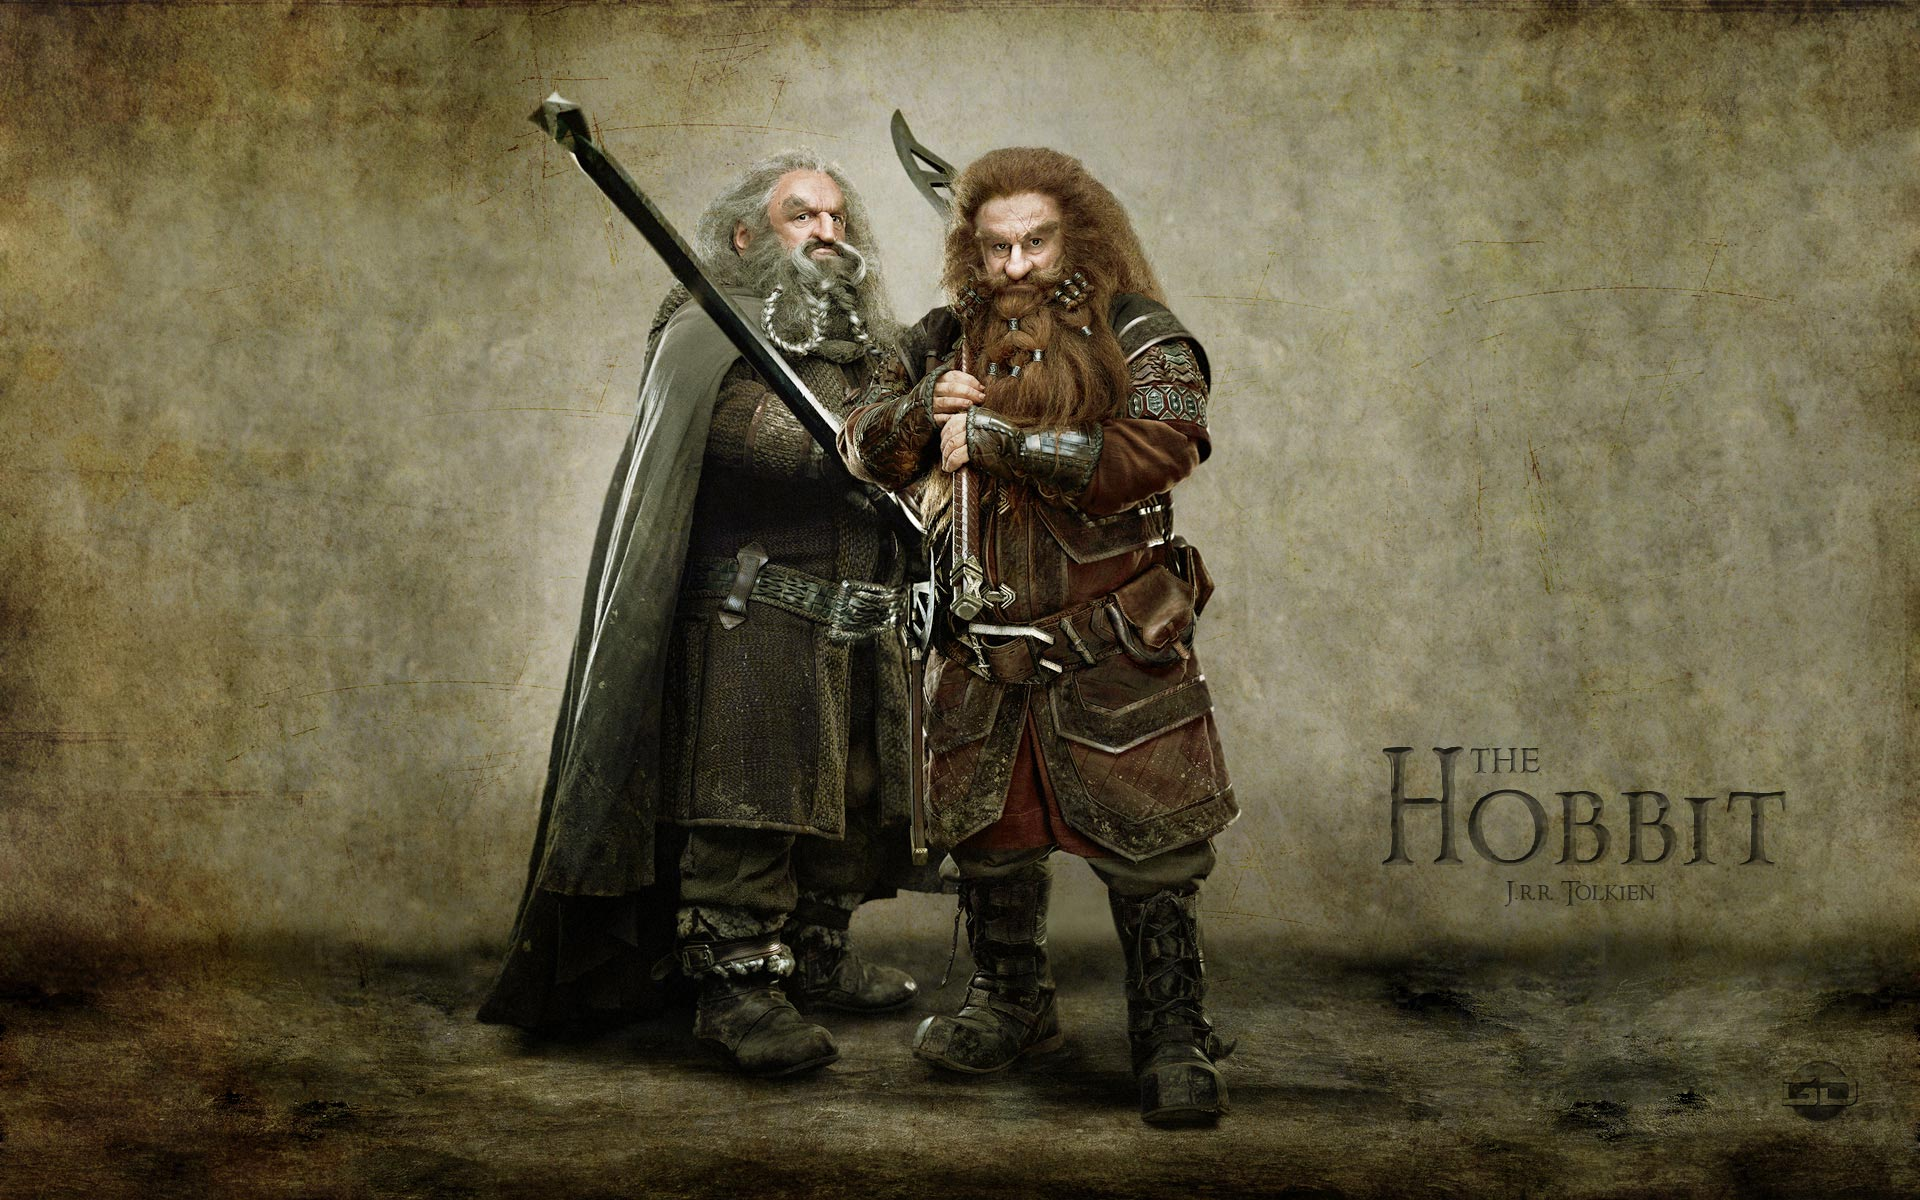 The Hobbit Movie Wallpapers 171 Awesome Wallpapers 1920x1200